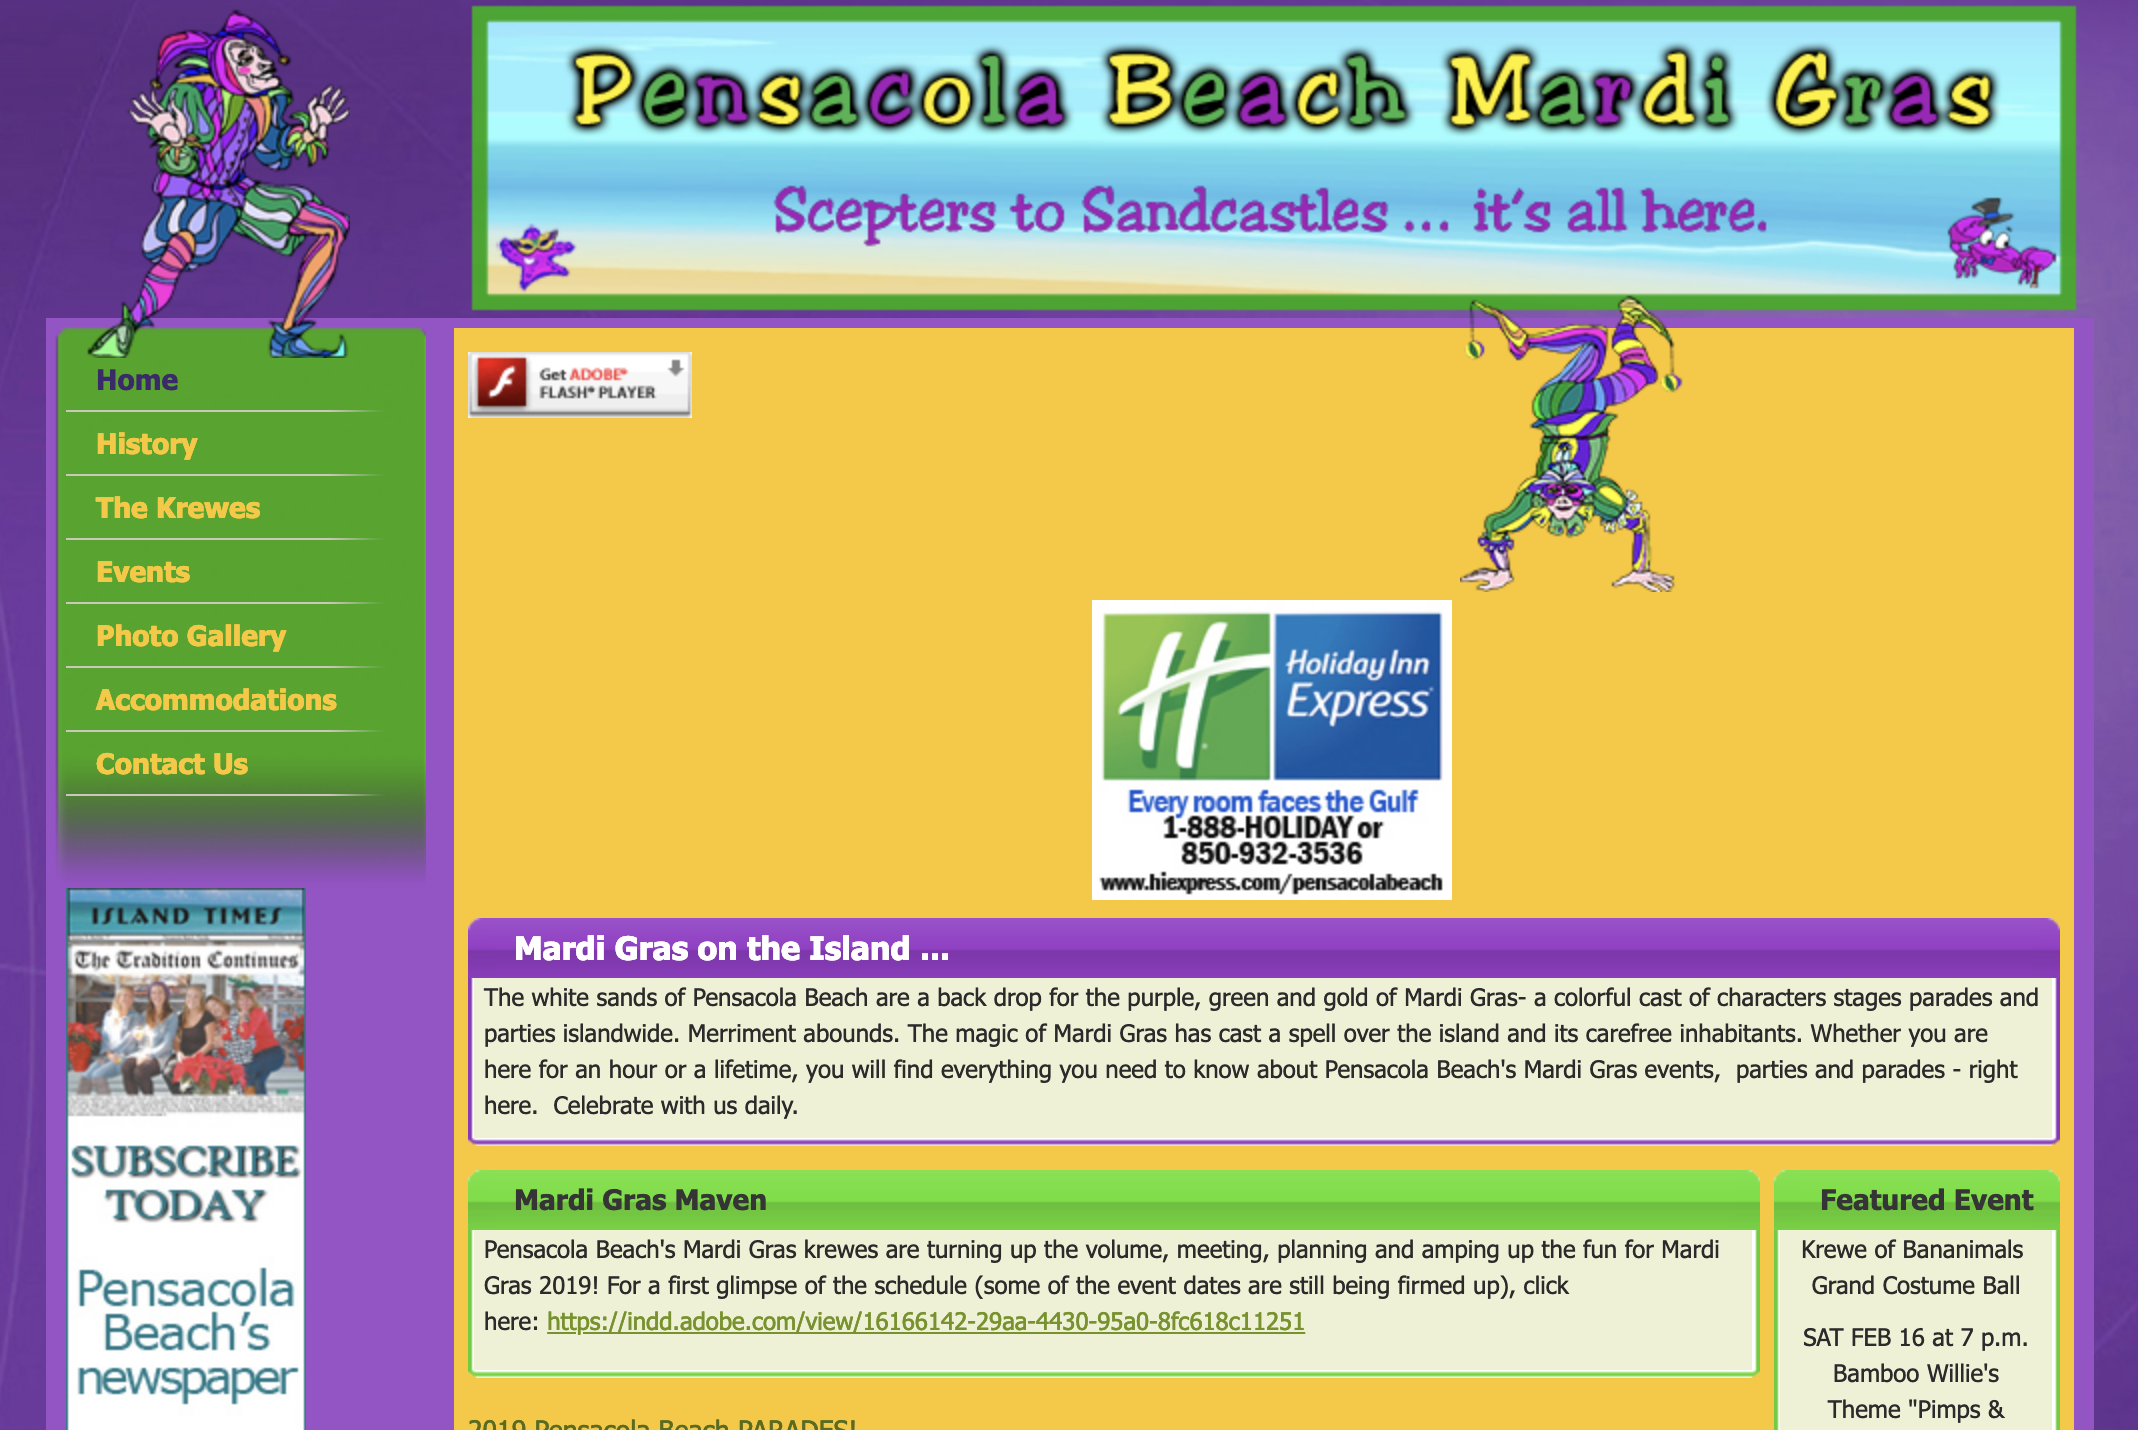 Pensacola Beach Mardi Gras website screenshot